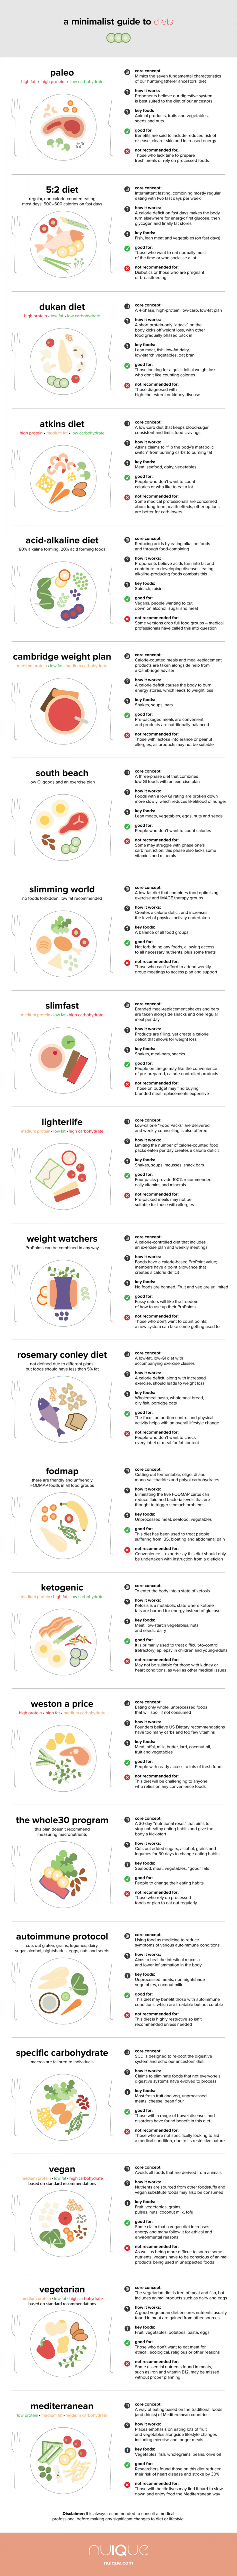 The Complete Minimalist Guide to Diets Infographic